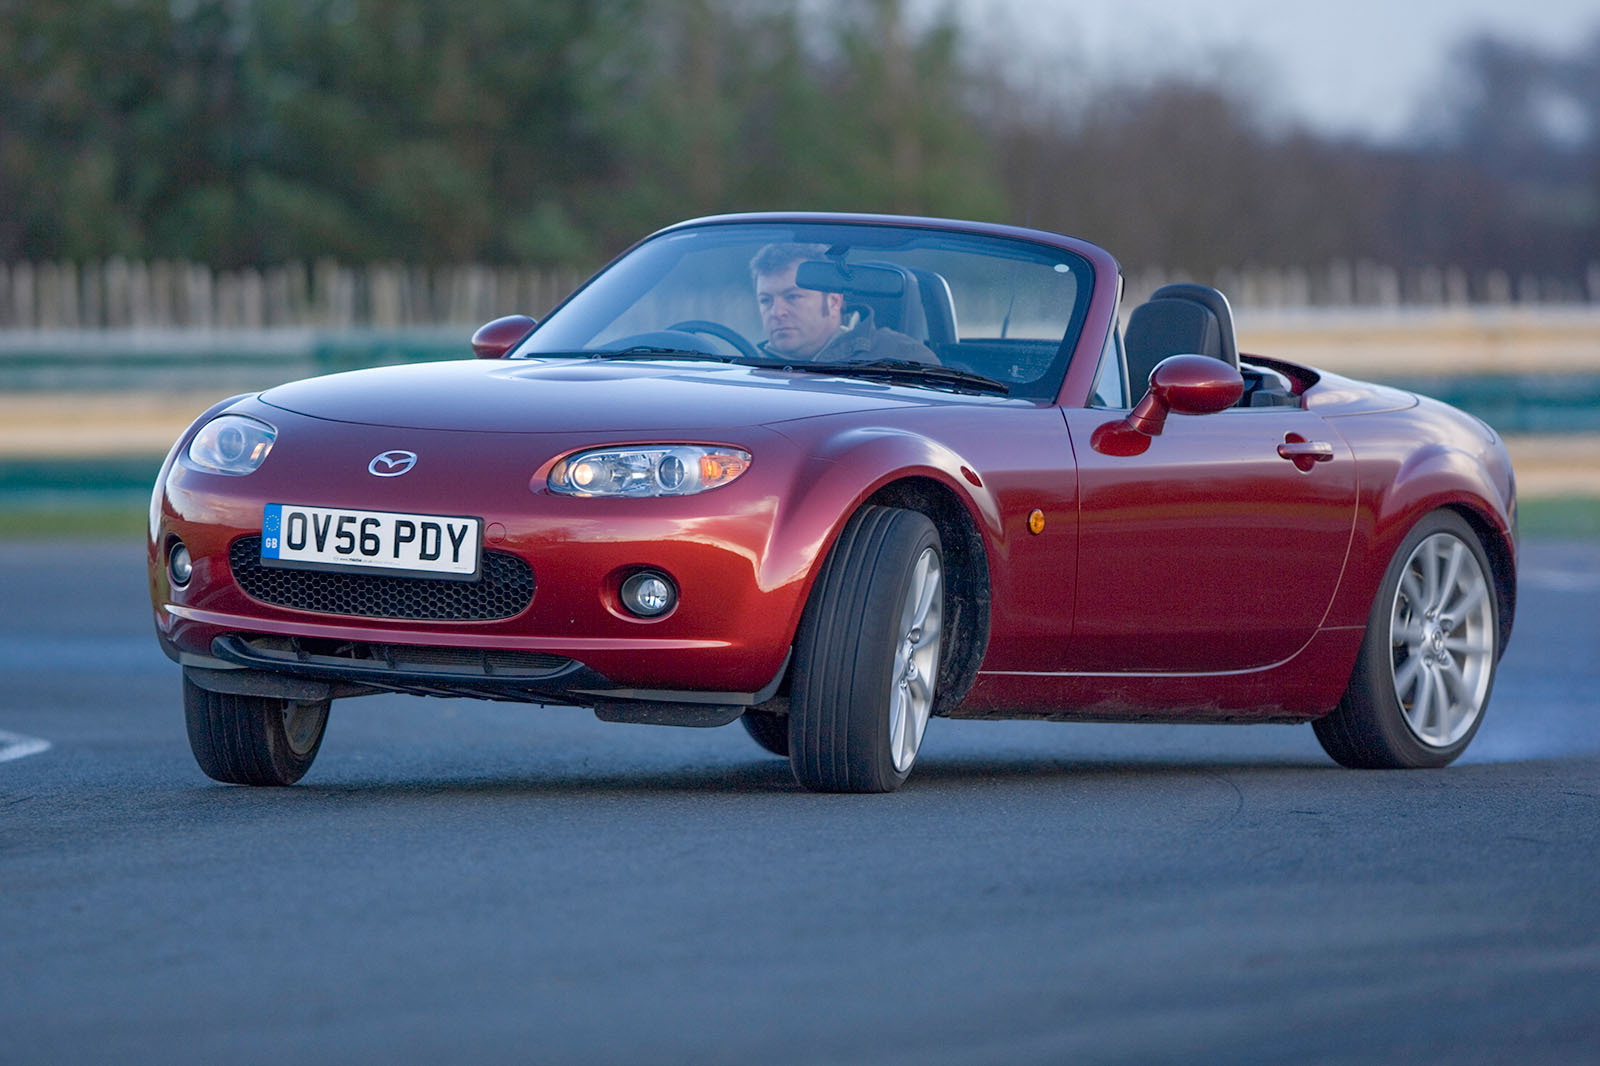 Used car buying guide: Mazda MX-5 Mk3 | Autocar